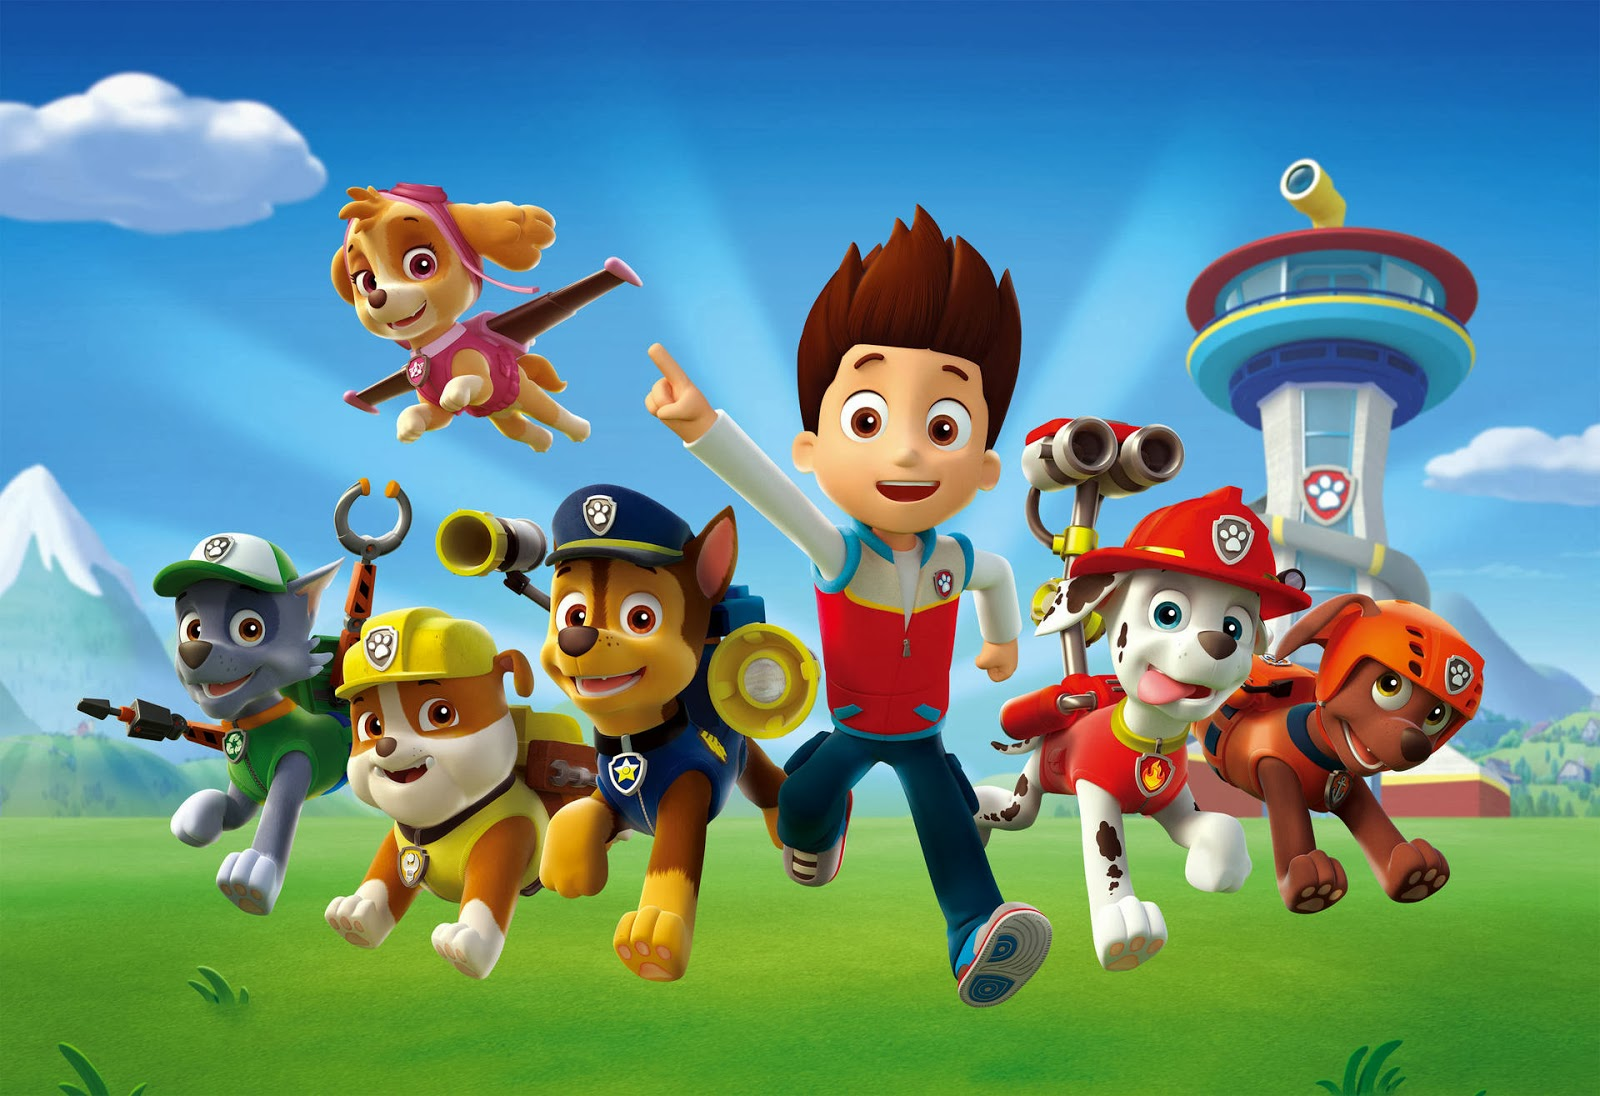 NickALive Nickelodeons quotPAW Patrolquot Recruits Heroic  : Paw Patrol Characters Cast Stars Nickelodeon Preschool Nick Jr Junior Chase Marshall Rocky Rubble Zuma Skye RyderGermany Deutschland Press from nickalive.blogspot.com size 1600 x 1096 jpeg 270kB